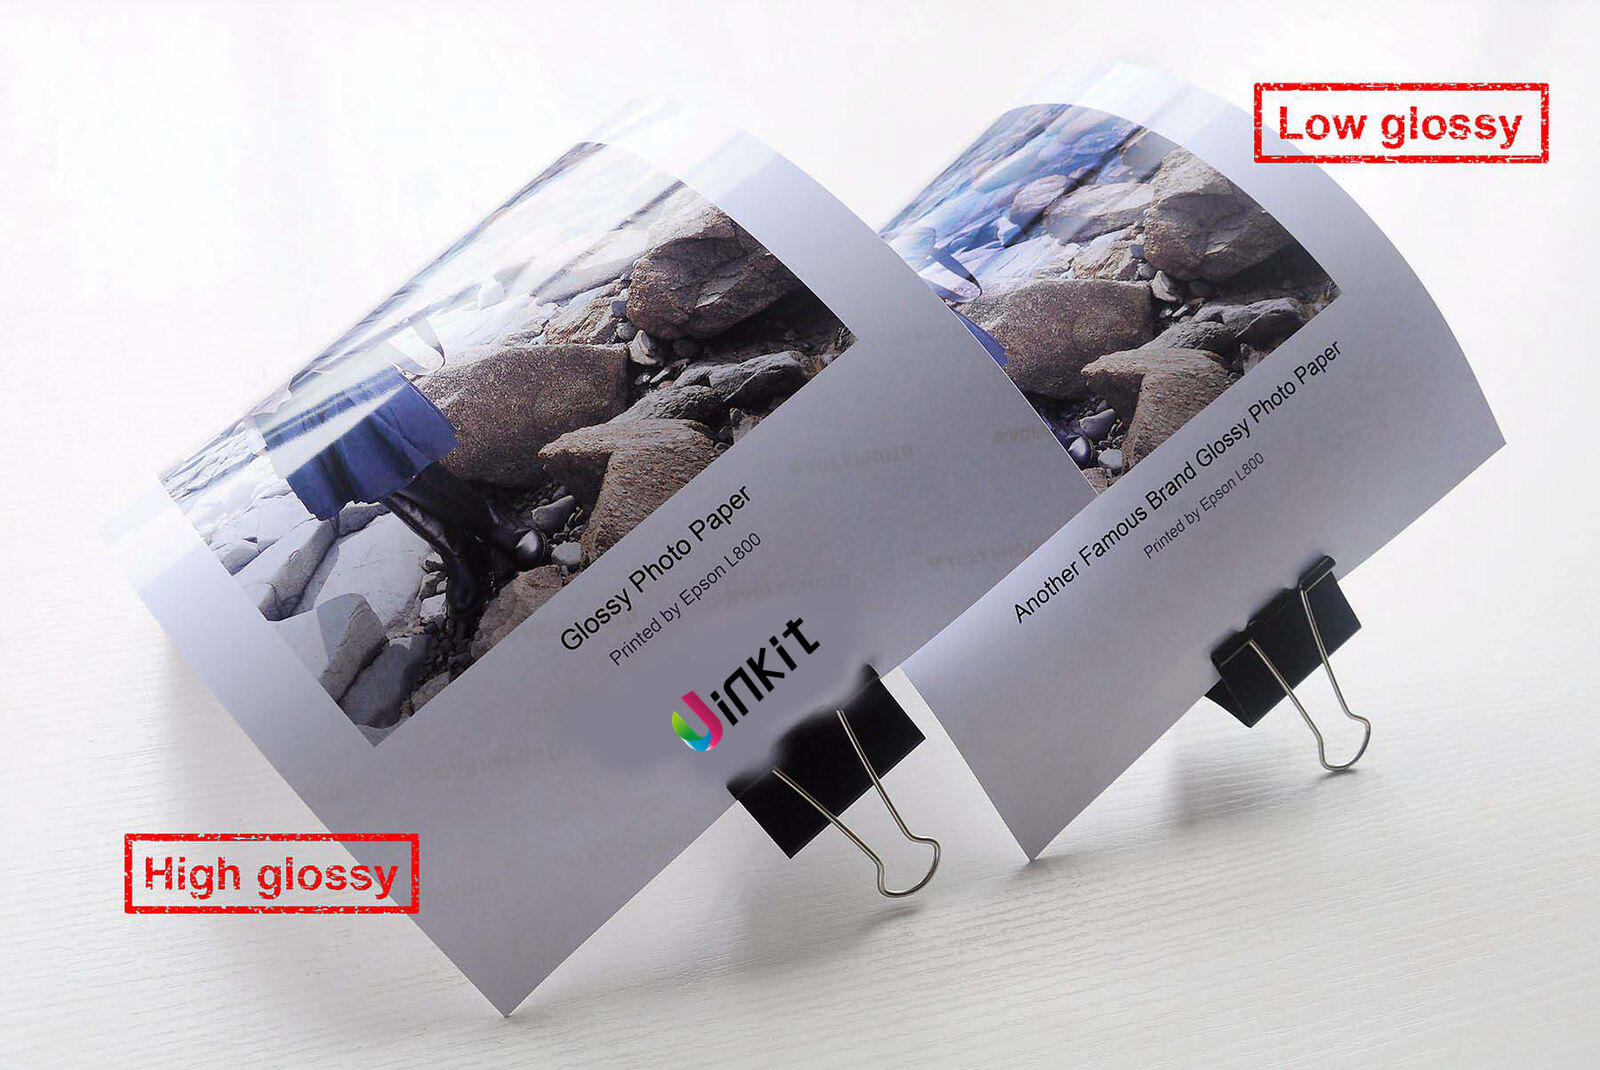 Uinkit  A3 A4 120 Sheets 180-260 Gsm High Glossy Photo Paper Inkjet Paper